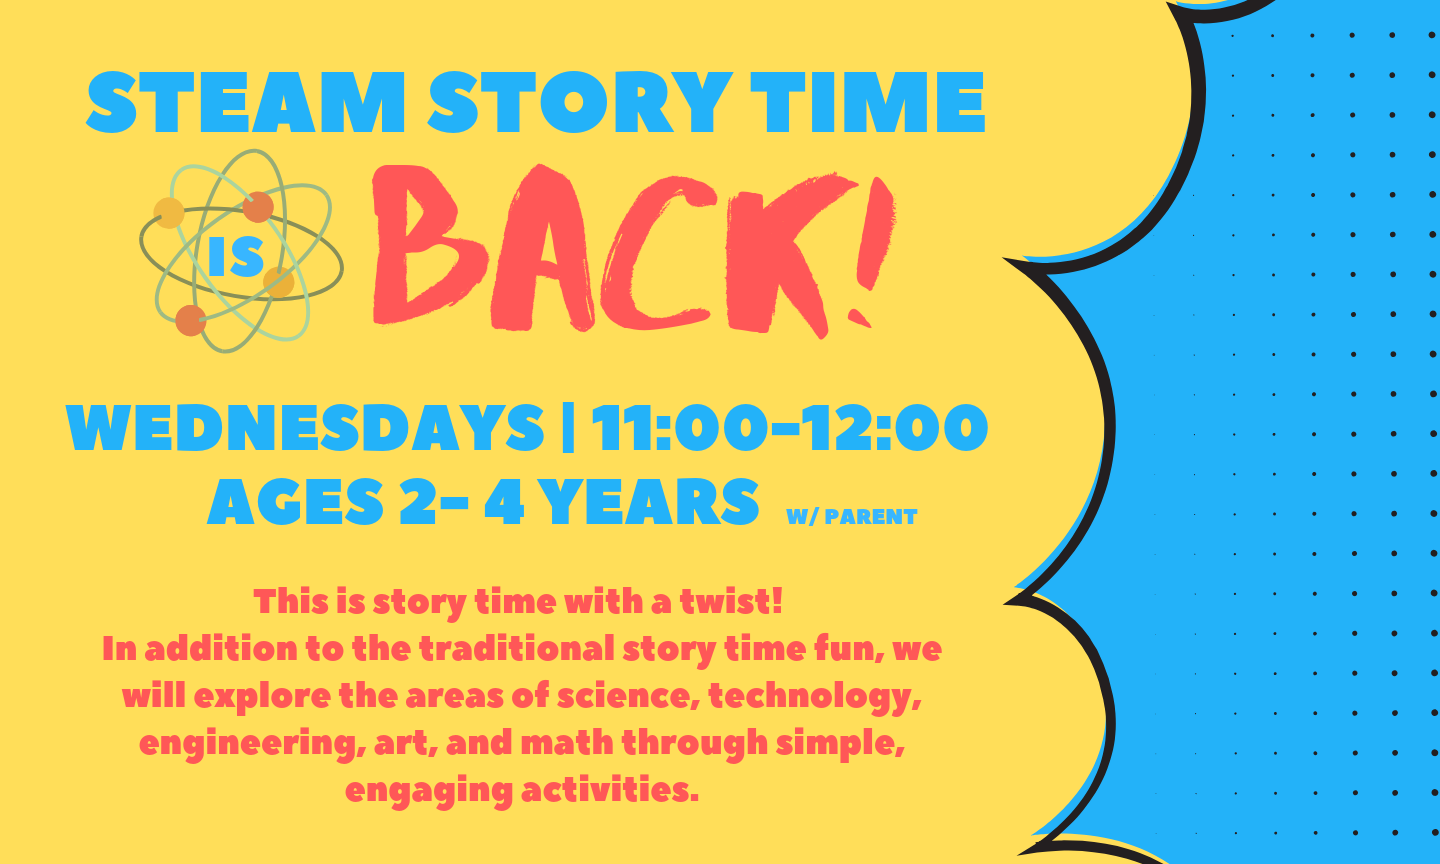 STEAM story time is back on wednesdays